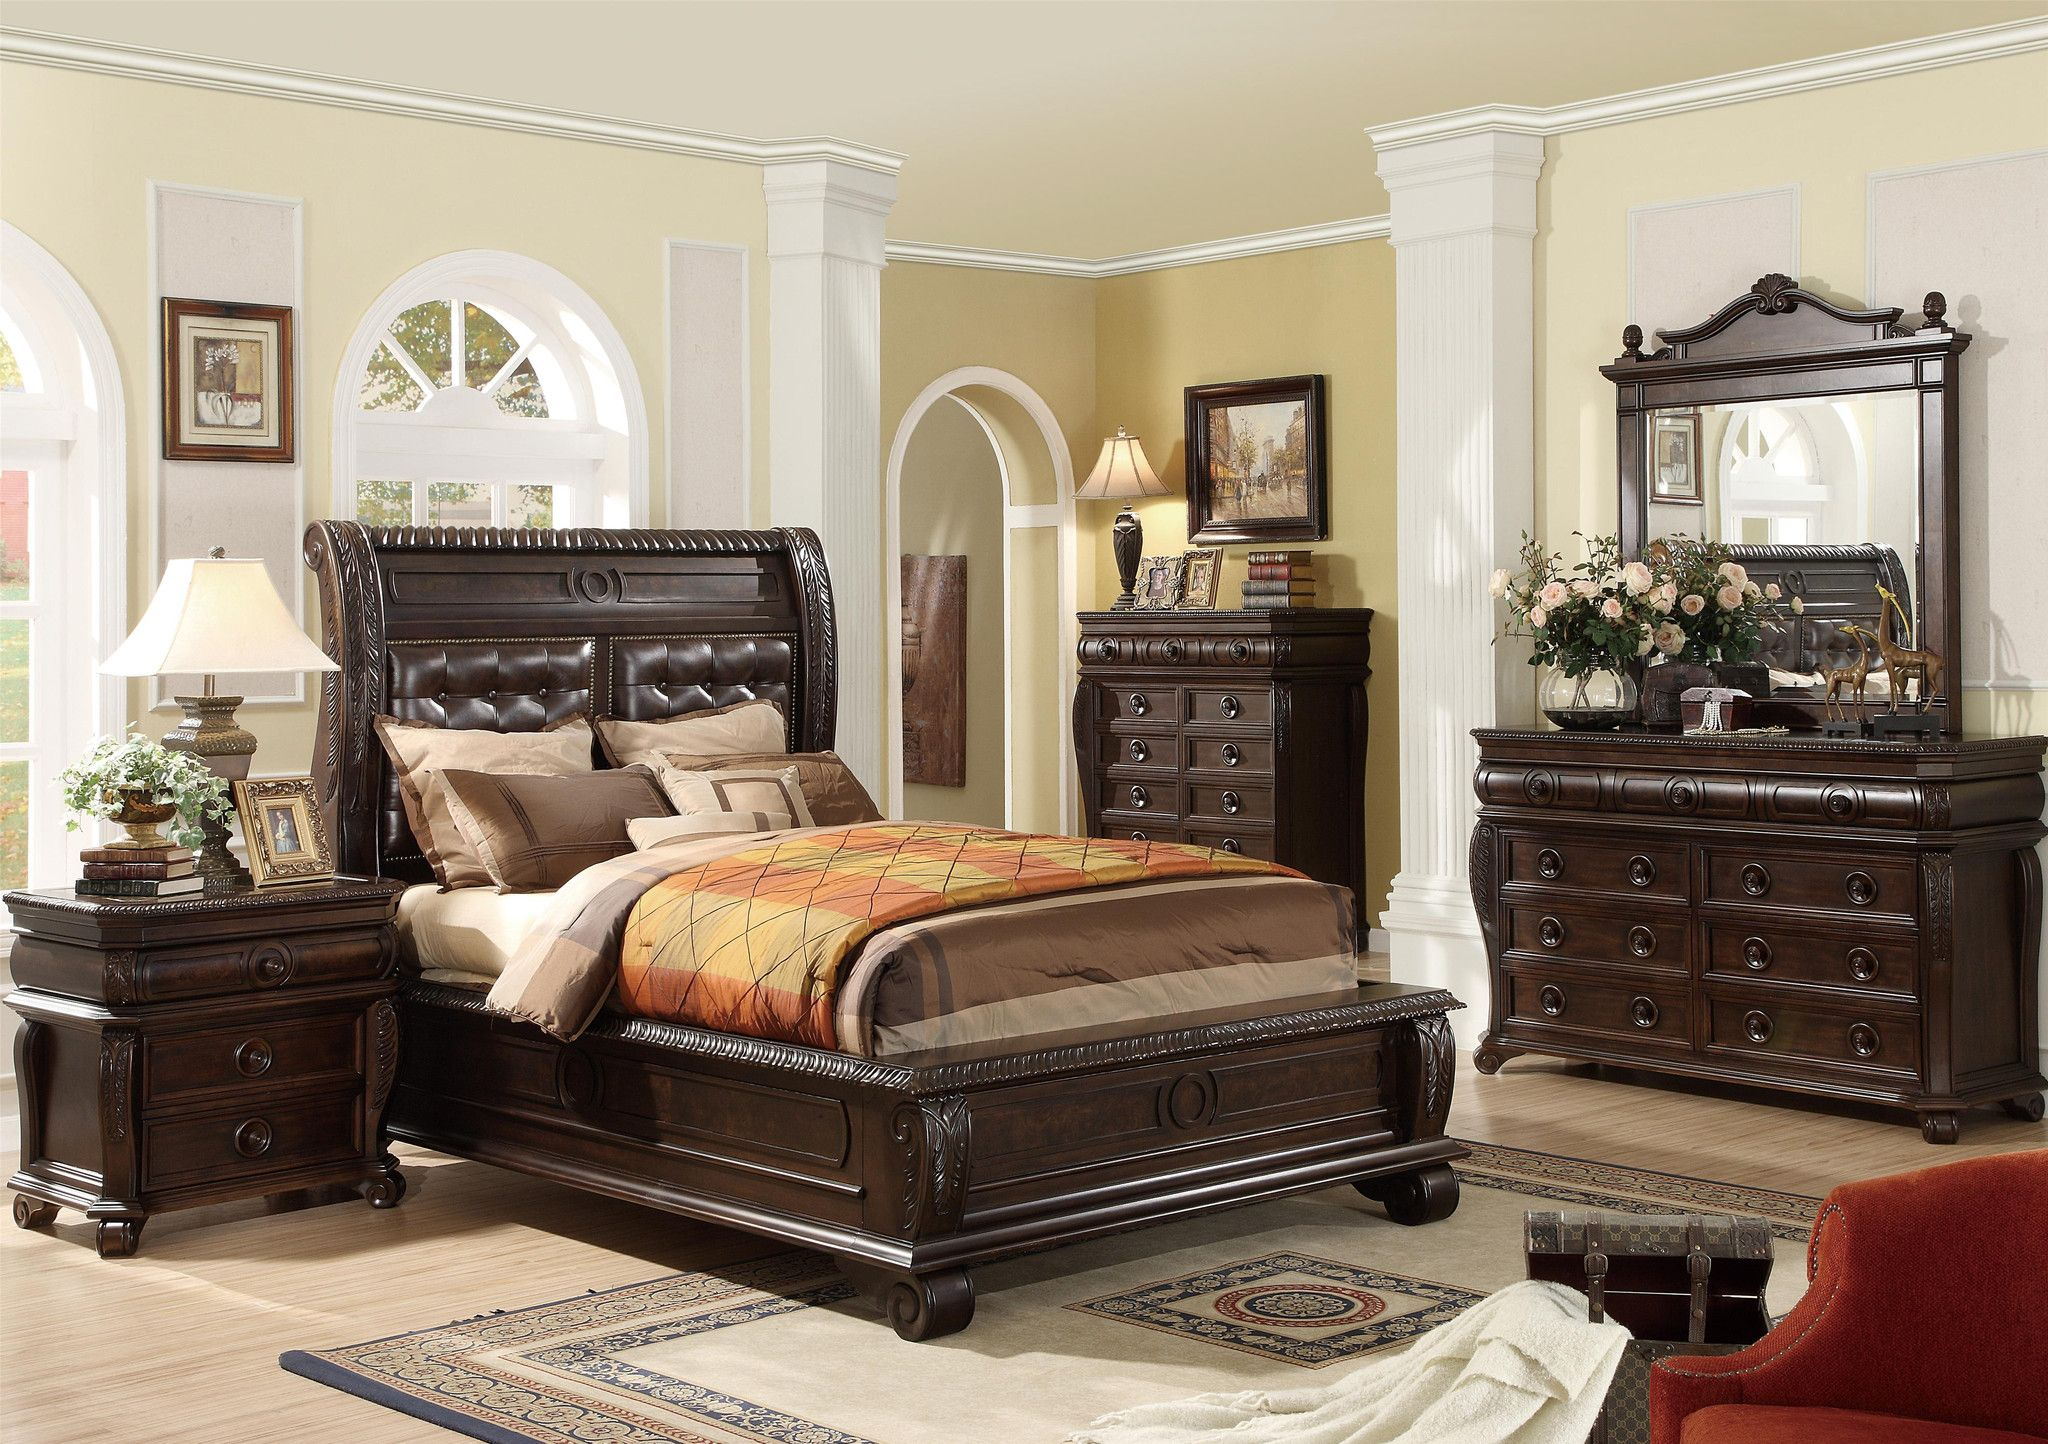 Rich With Traditional Style And A Wealth Of Detail This Bedroom